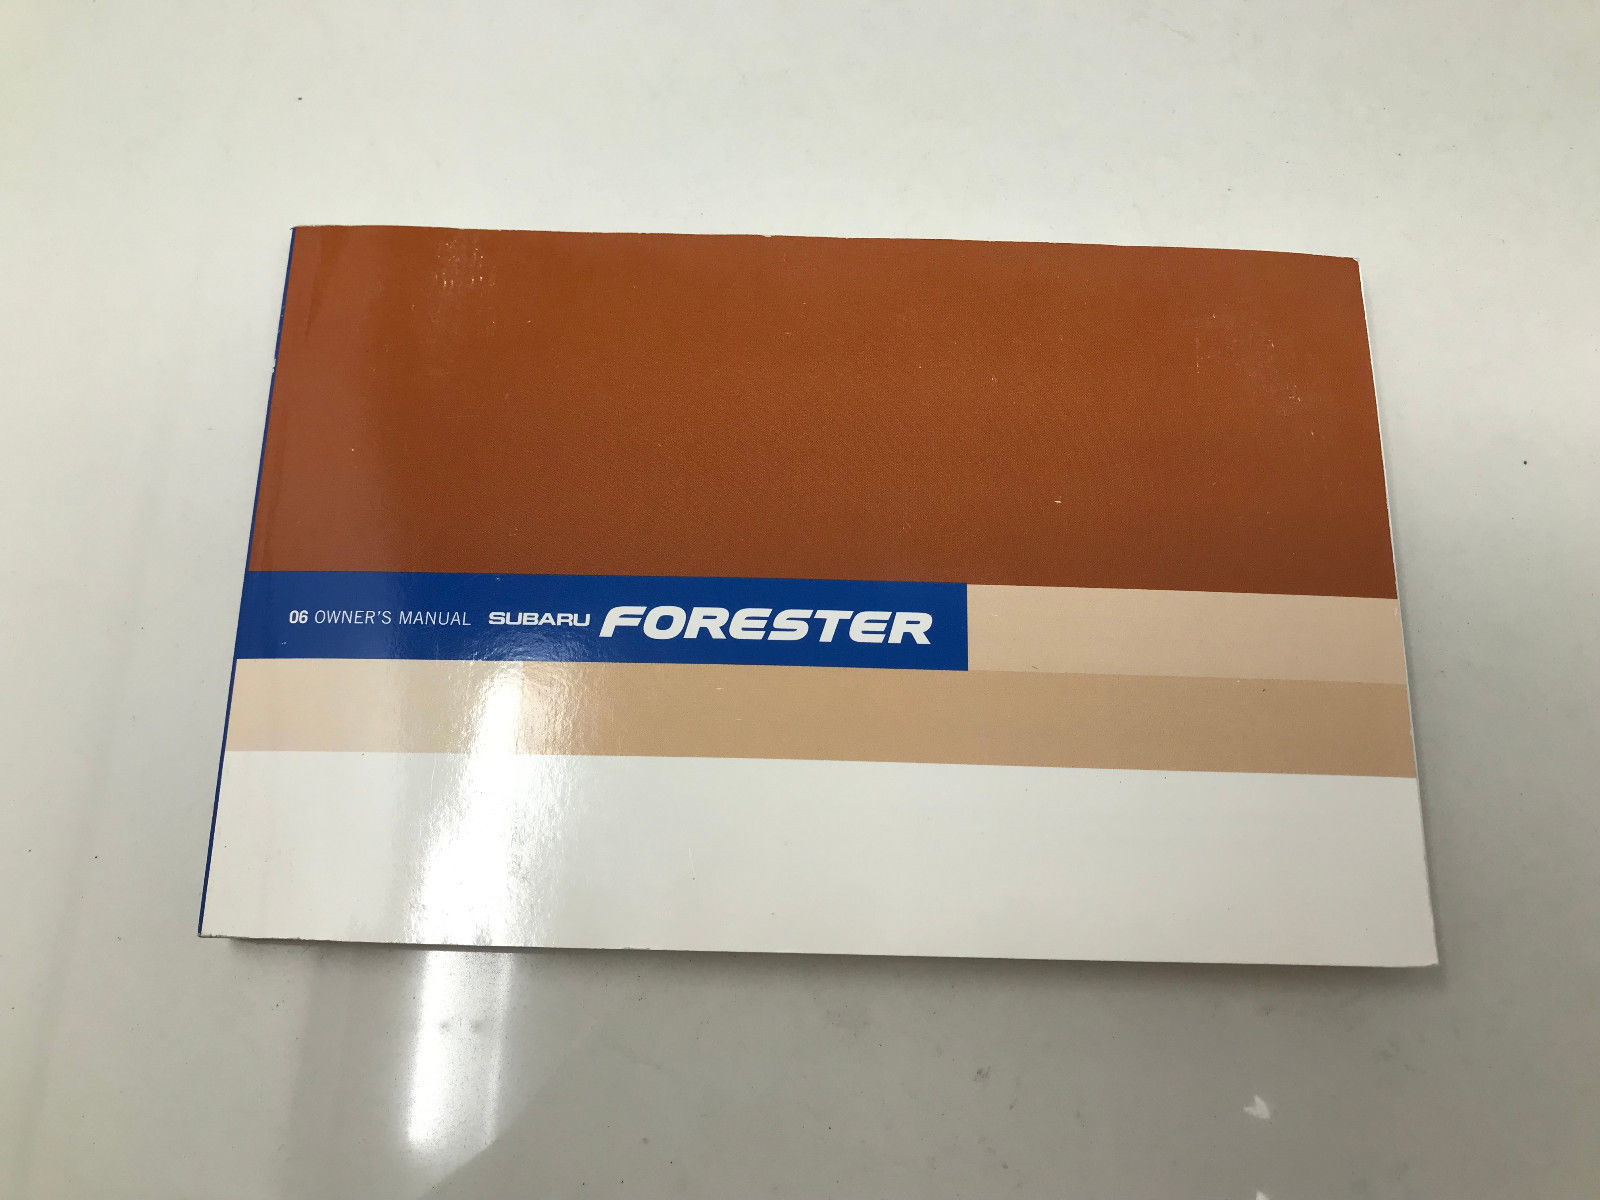 2006 Subaru Forester Owners Manual book Z0I14